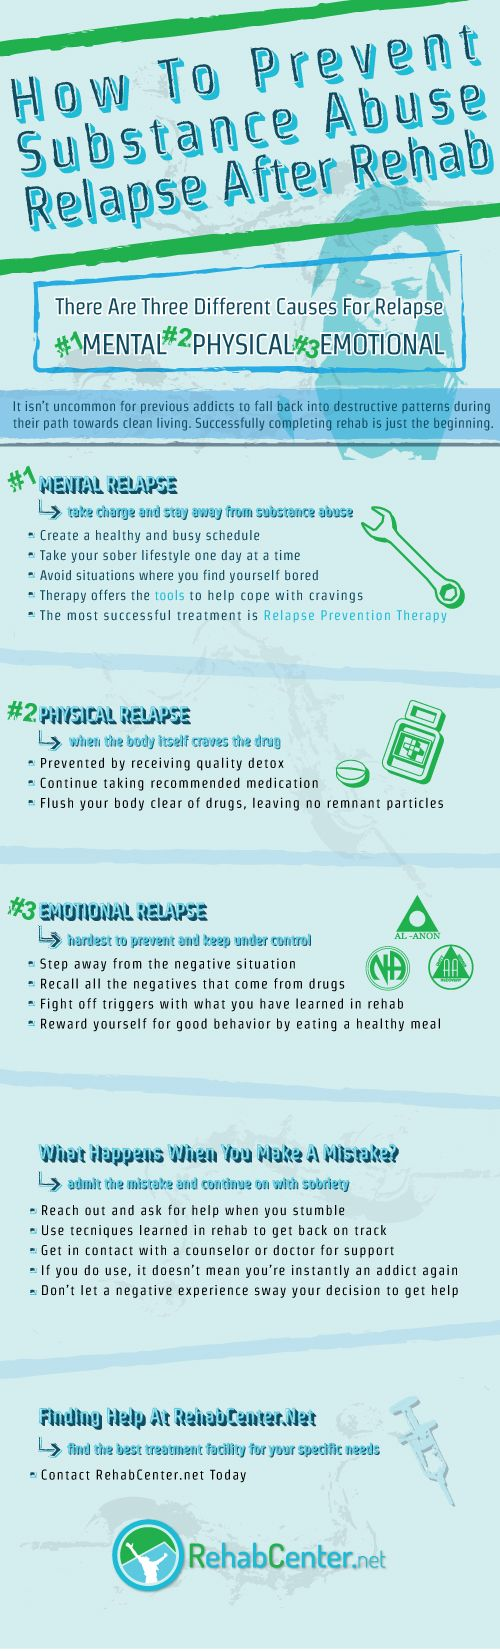 How To Prevent Substance Abuse Relapse infographic-01